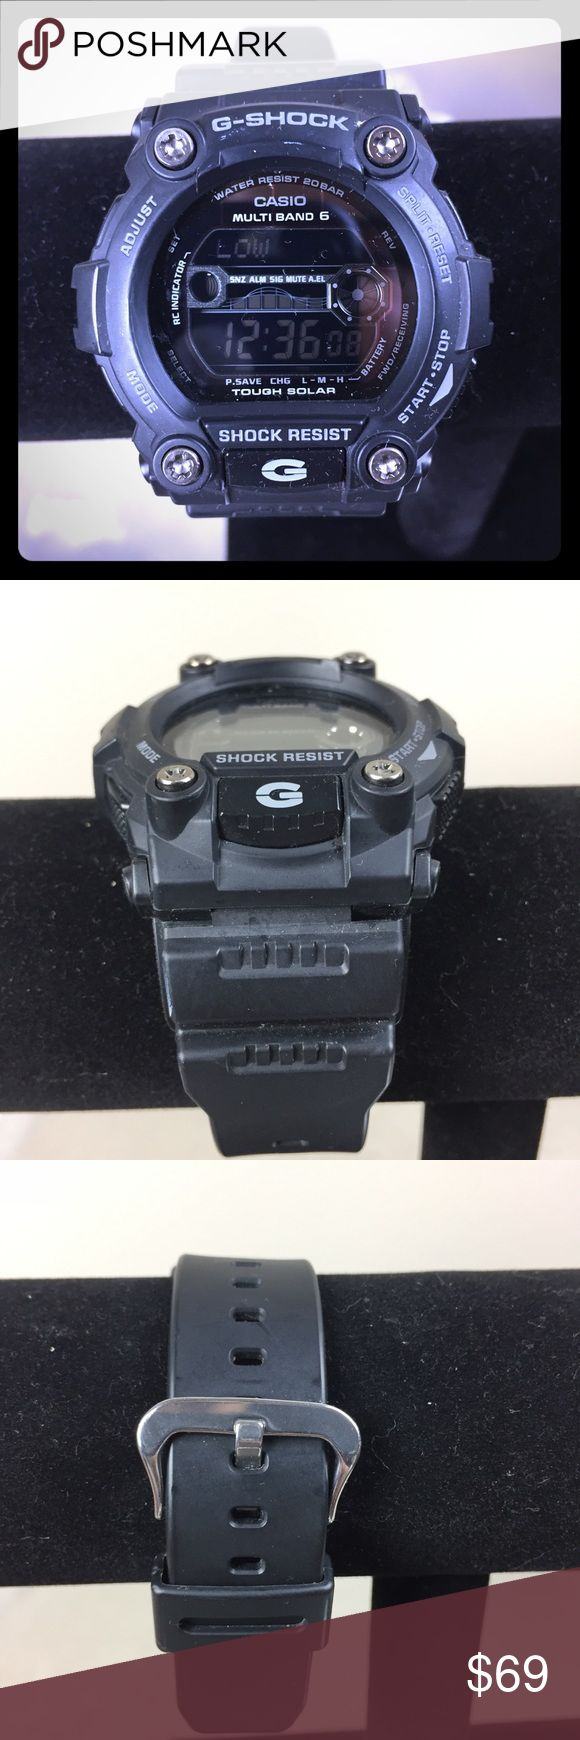 Mens G-Shock resist watch Casio 3200 GW-7900B This is an authentic mens casio G-shock. Serial number is in the title. It is shock resistant and has only been worn about 5 times and has no flaws. It is a sleek jet black color. Detailed pictures of the back and face have been provided to check for yourself if you'd like. It fits to all sizes with its adjustable band. It glows when the G button is pushed. At an original price of 104$ retail this is a great buy! Casio Accessories Watches